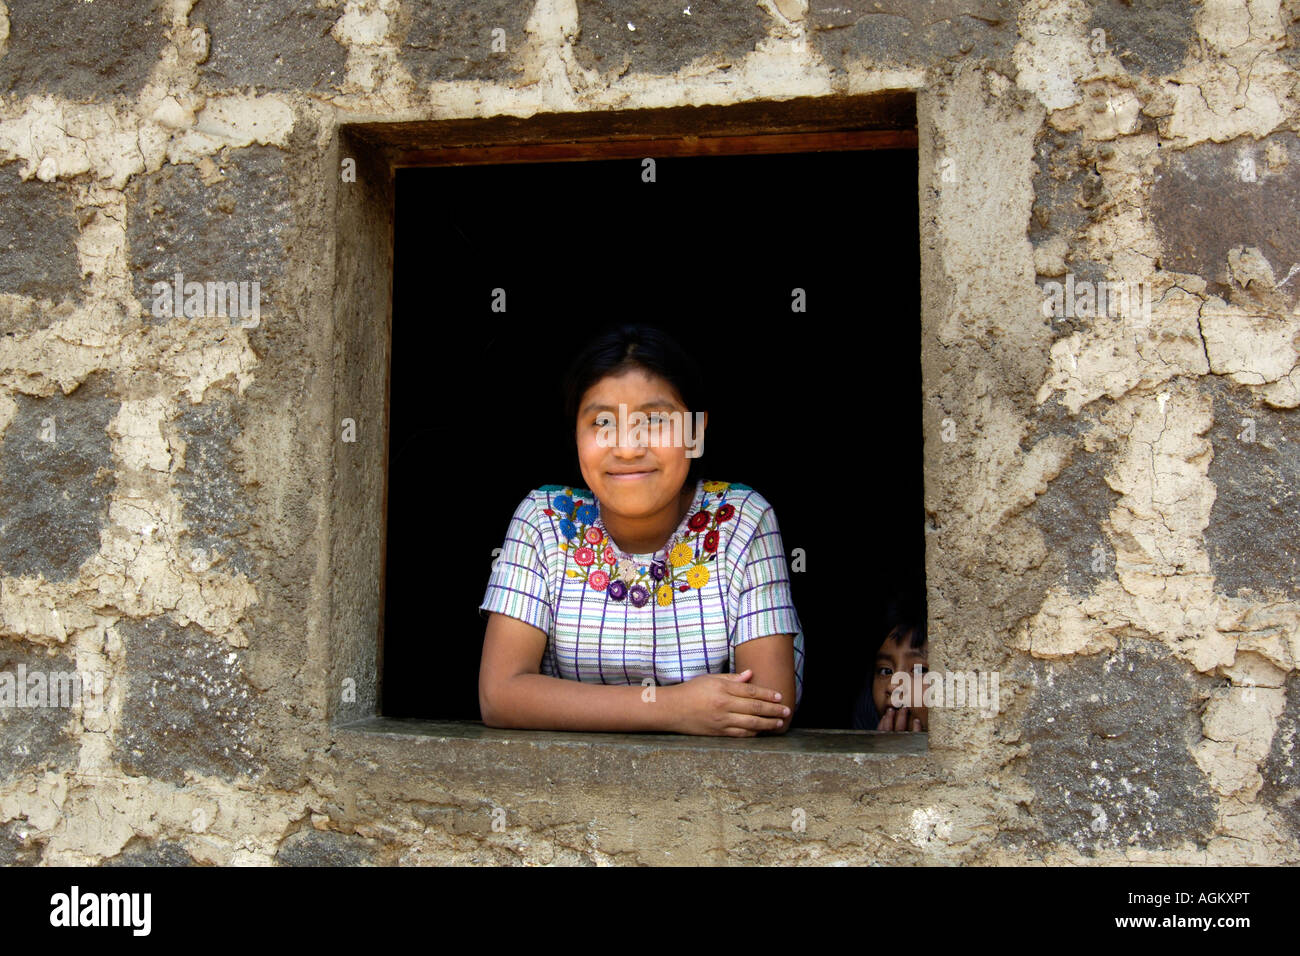 Guatemala, Santiago Atitlan, Portrait of smiling girl in crude window with peeking boy. - Stock Image